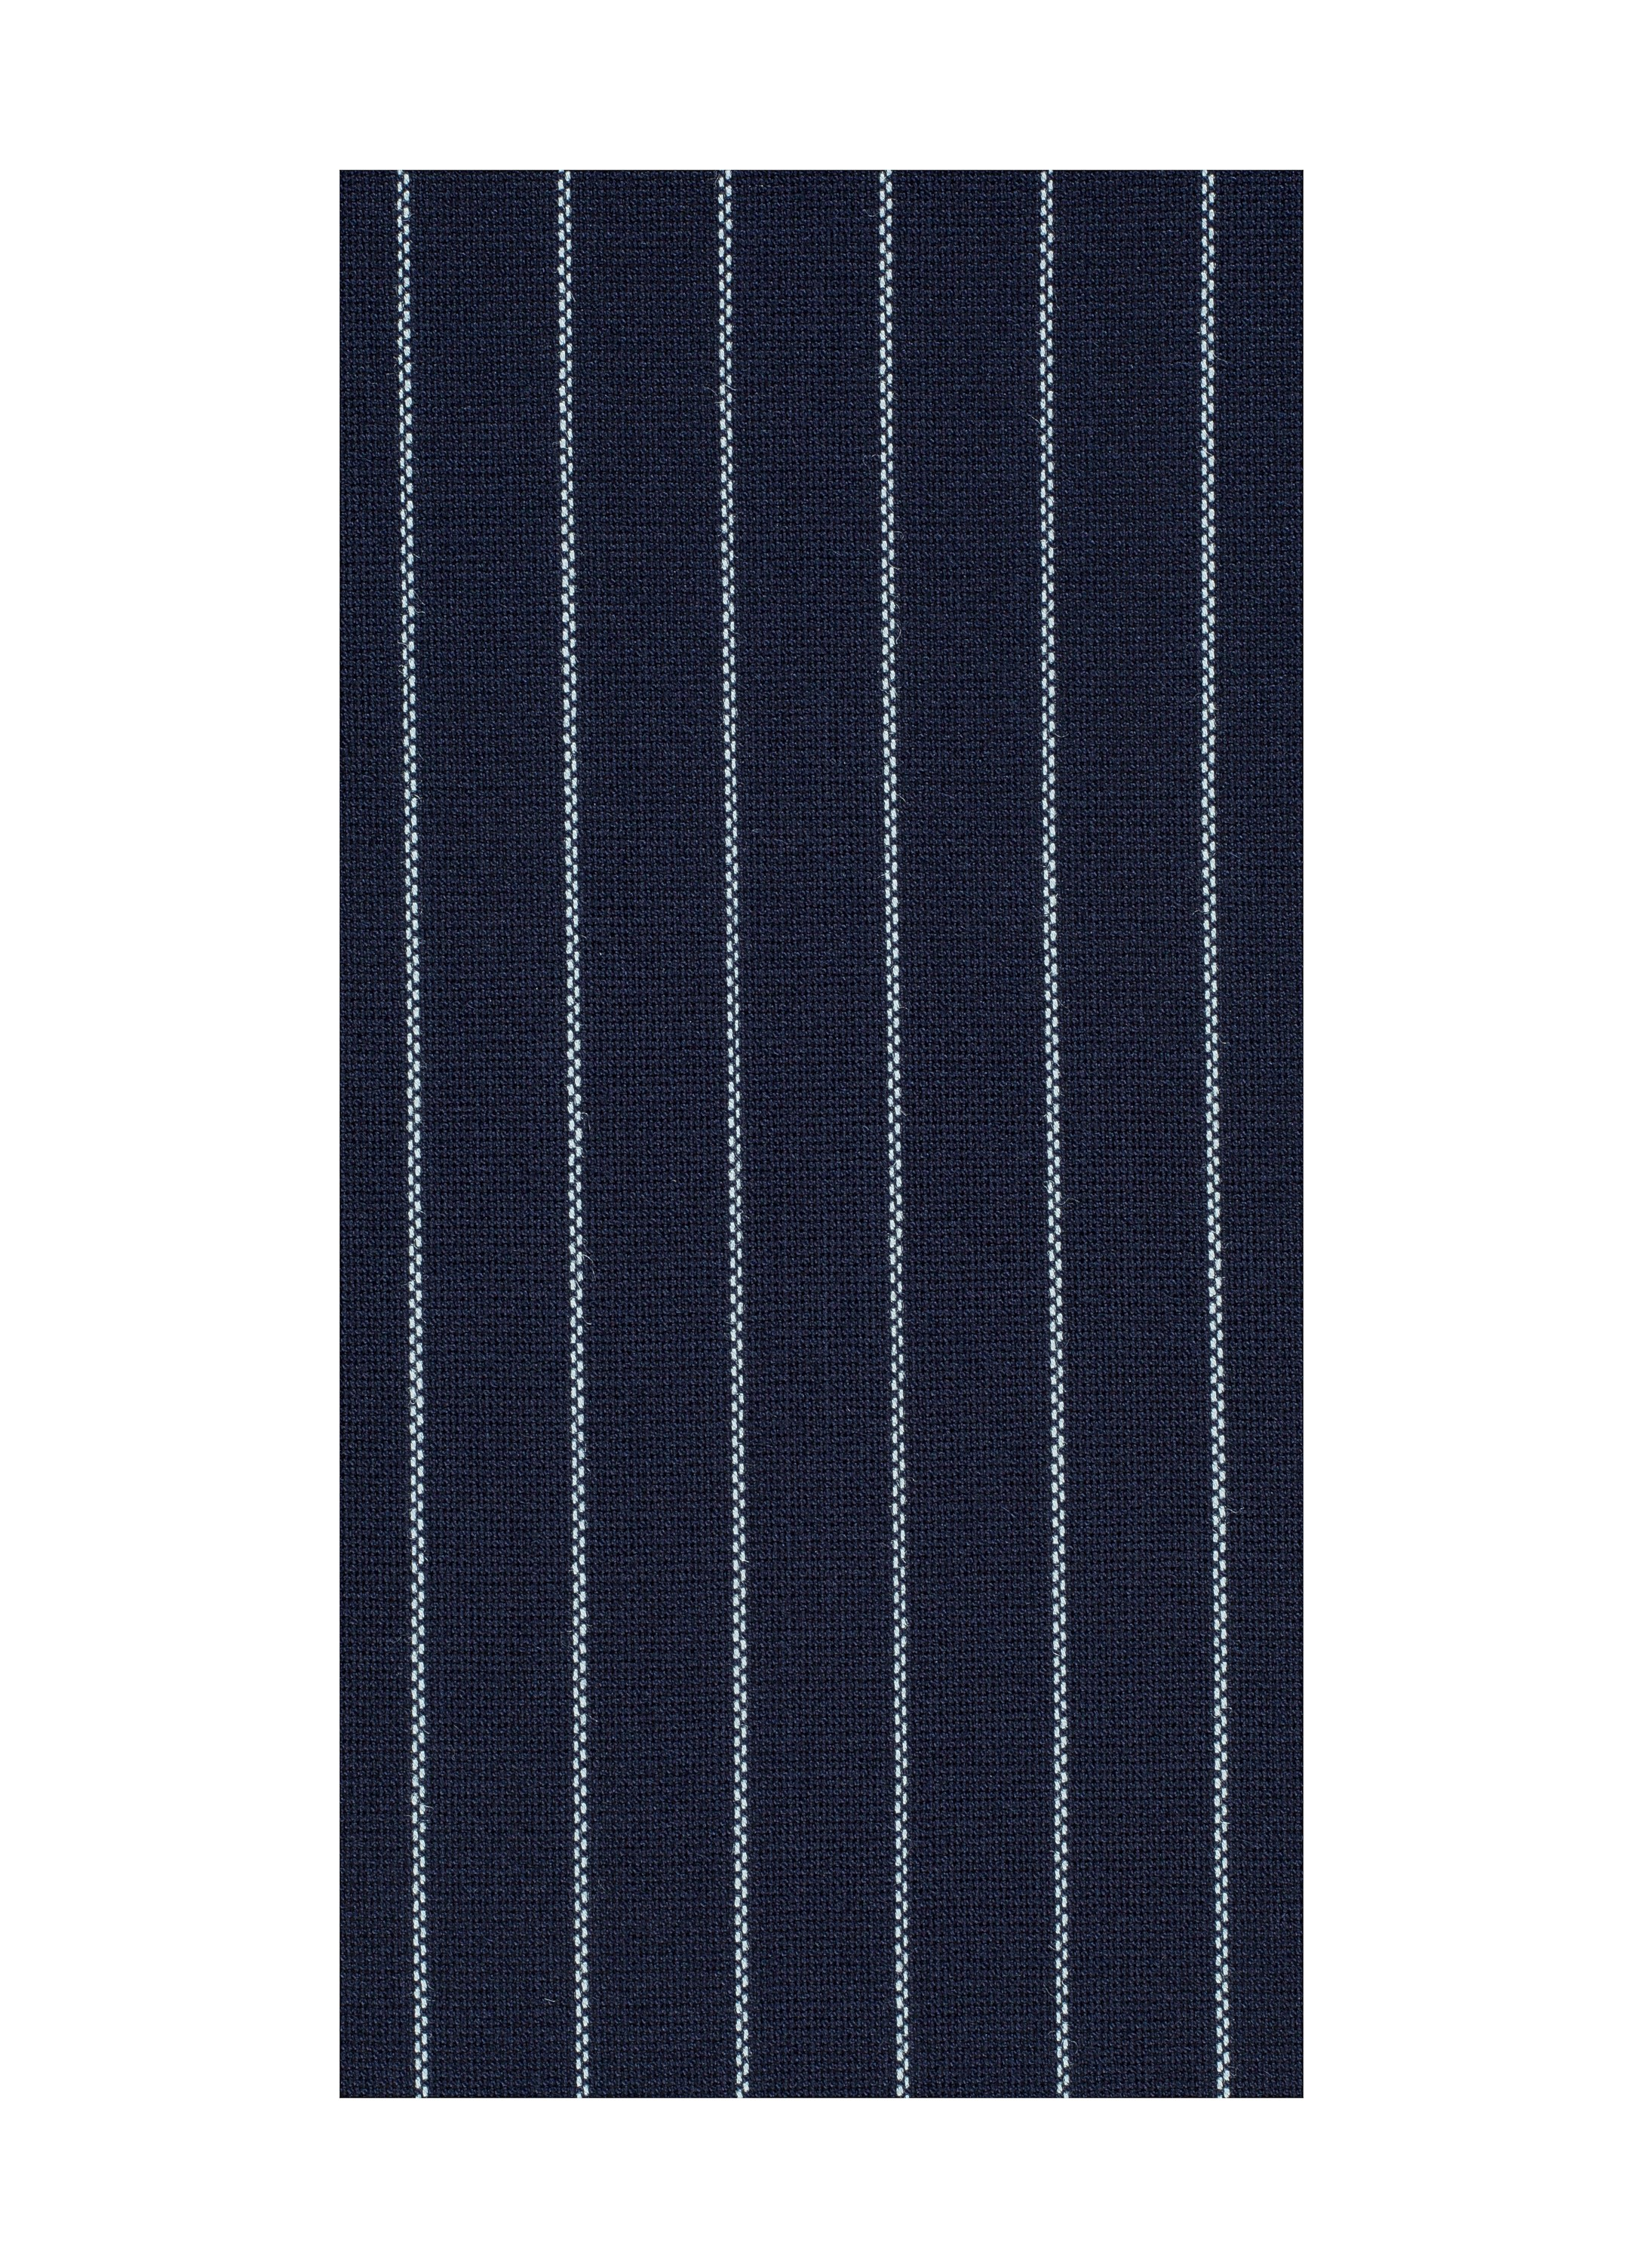 Suits_Blue_Stripe_Havana_P5112_Suitsupply_Online_Store_2.jpg